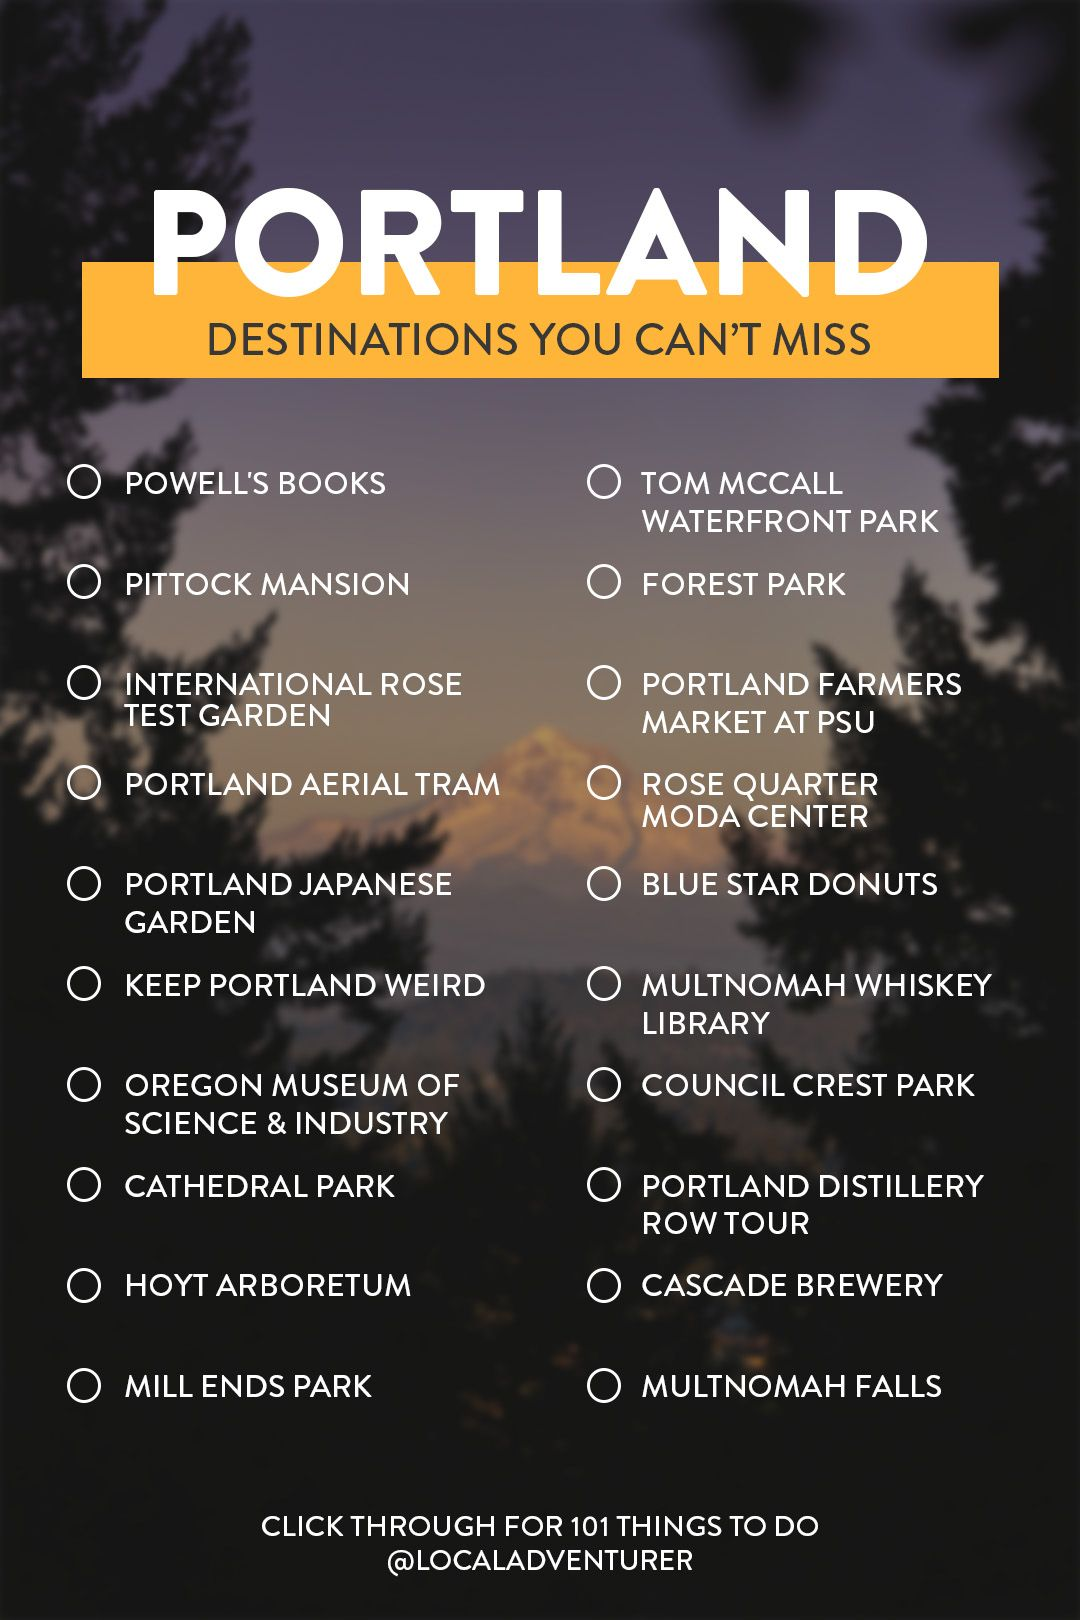 Looking for some new adventures in Portland Oregon? Save this pin for the top attractions but click through to see the full bucket list of 101 things to do in Portland// Local Adventurer #pdxnow #portland #localadventurer #portlandoregon #traveloregon #oregon #pdx